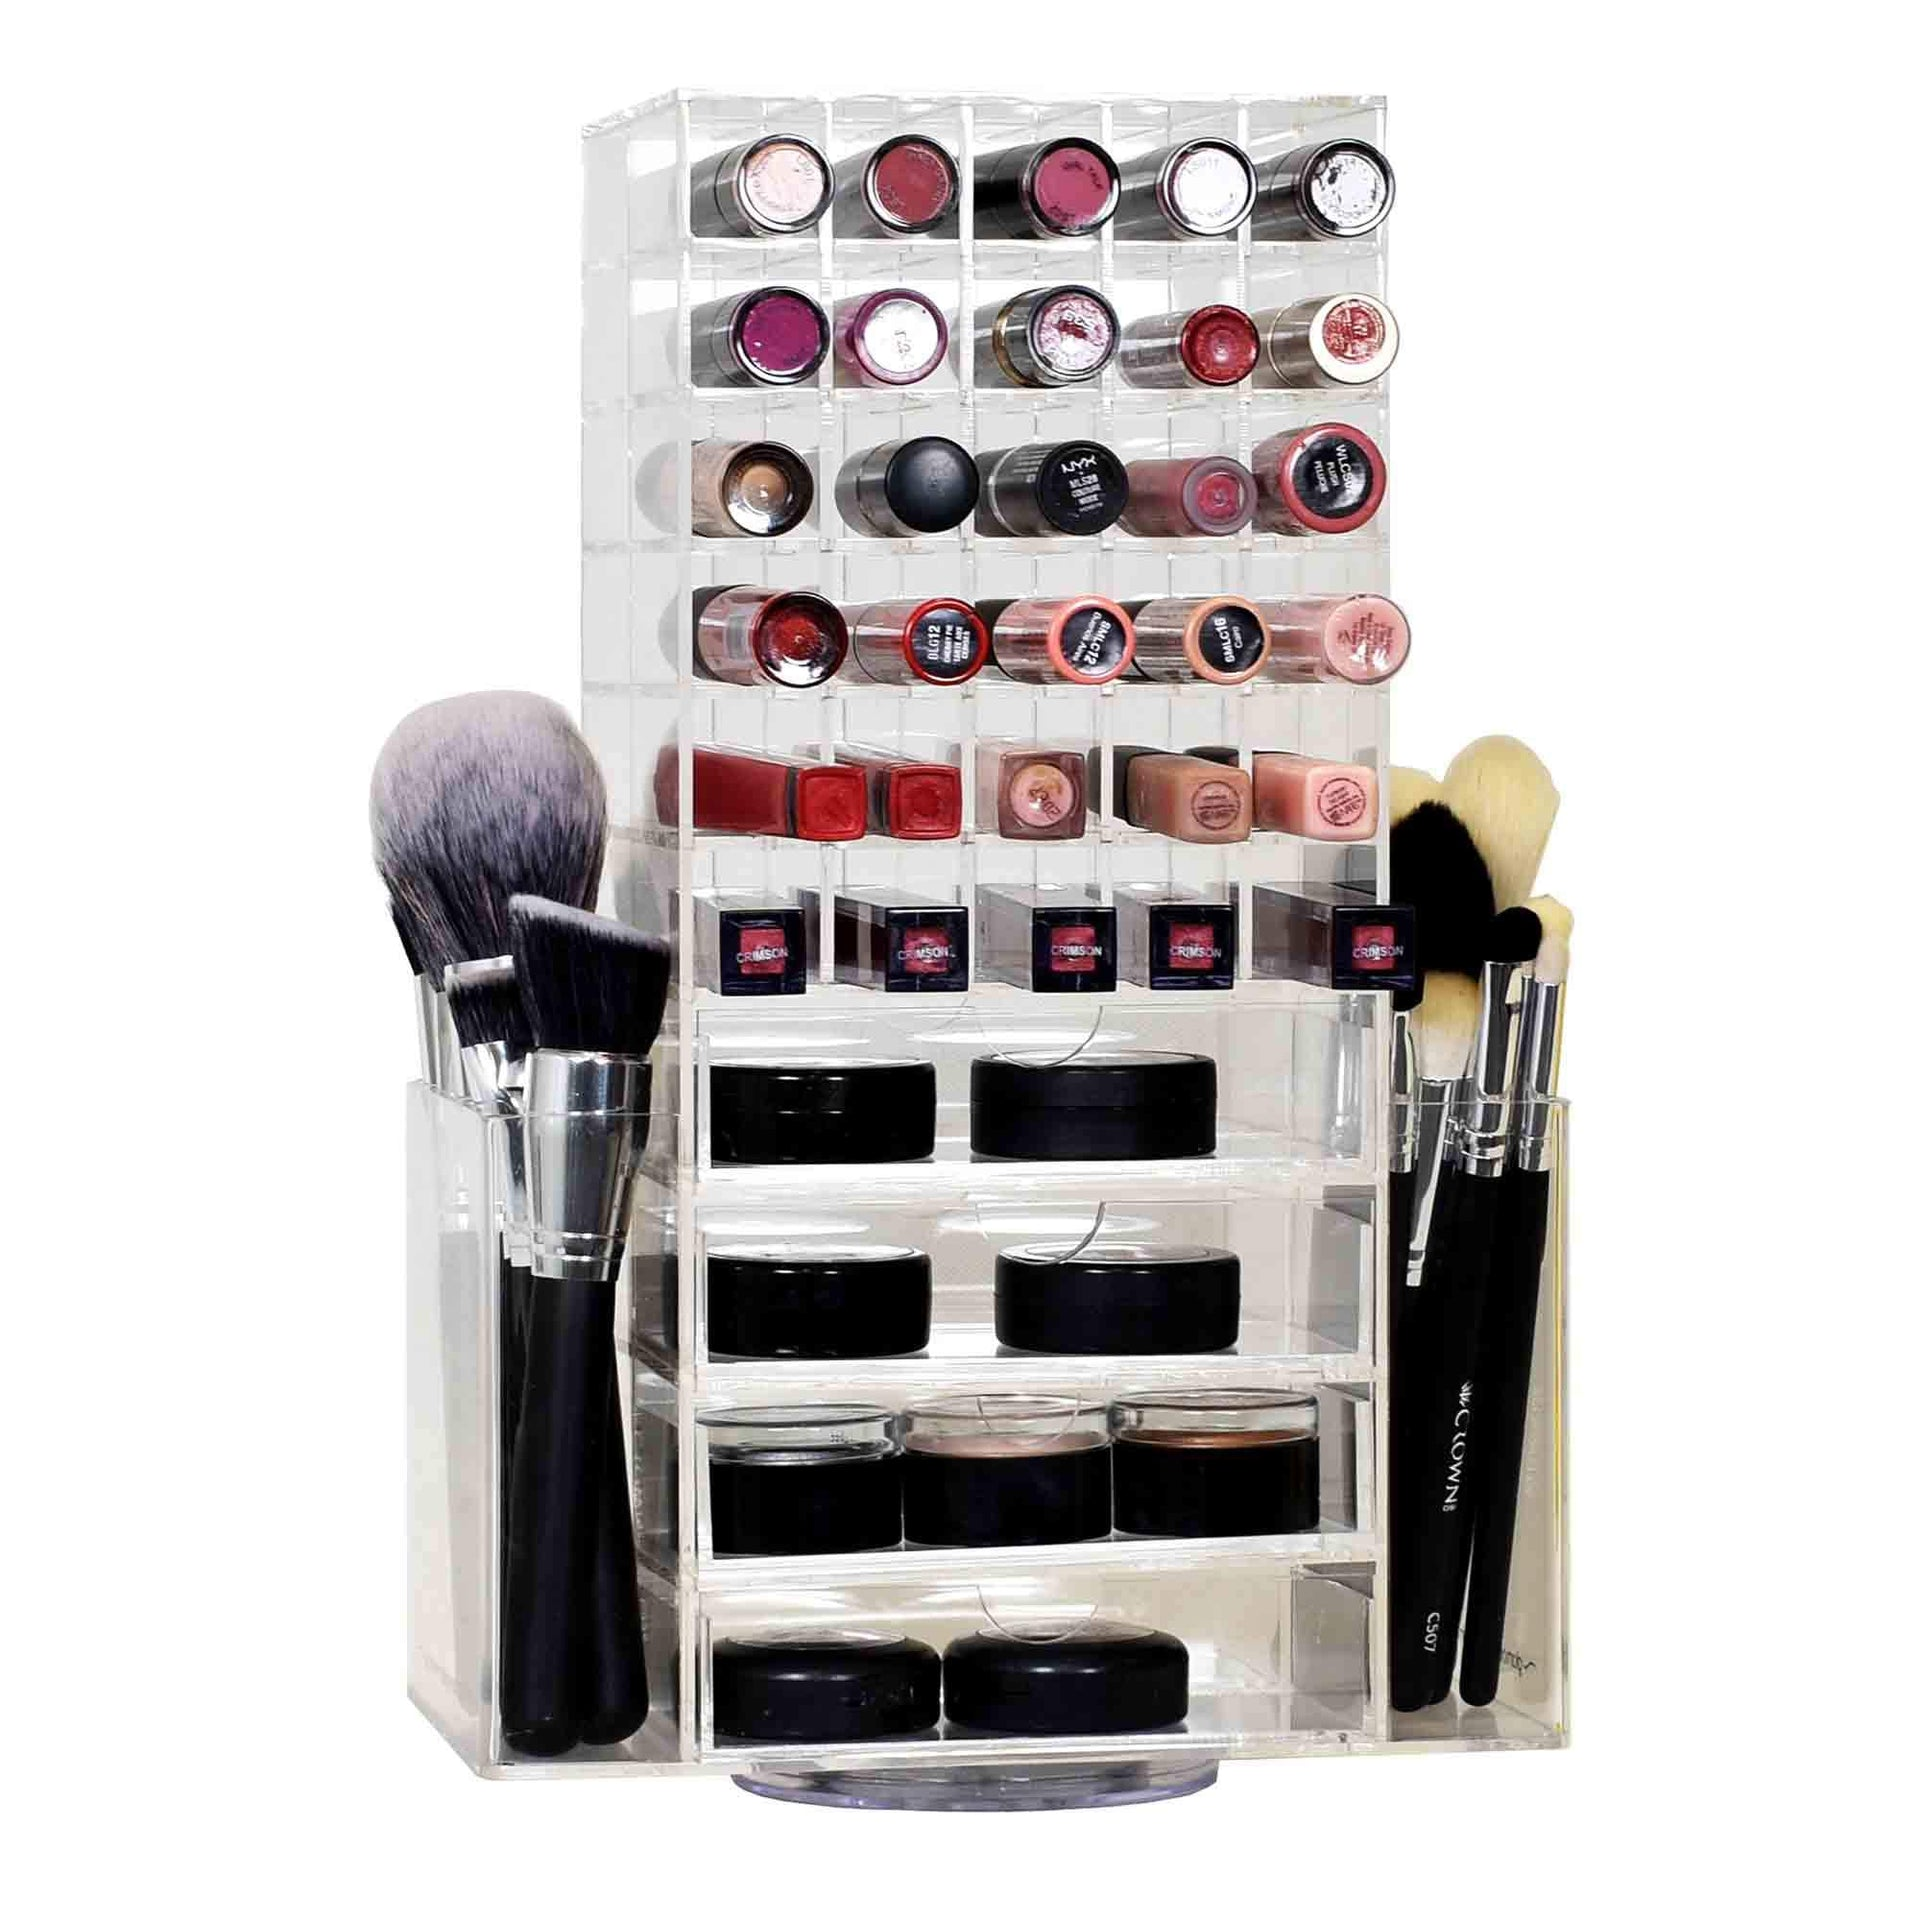 Lipstick Holder - Rotating Lipwear Organiser